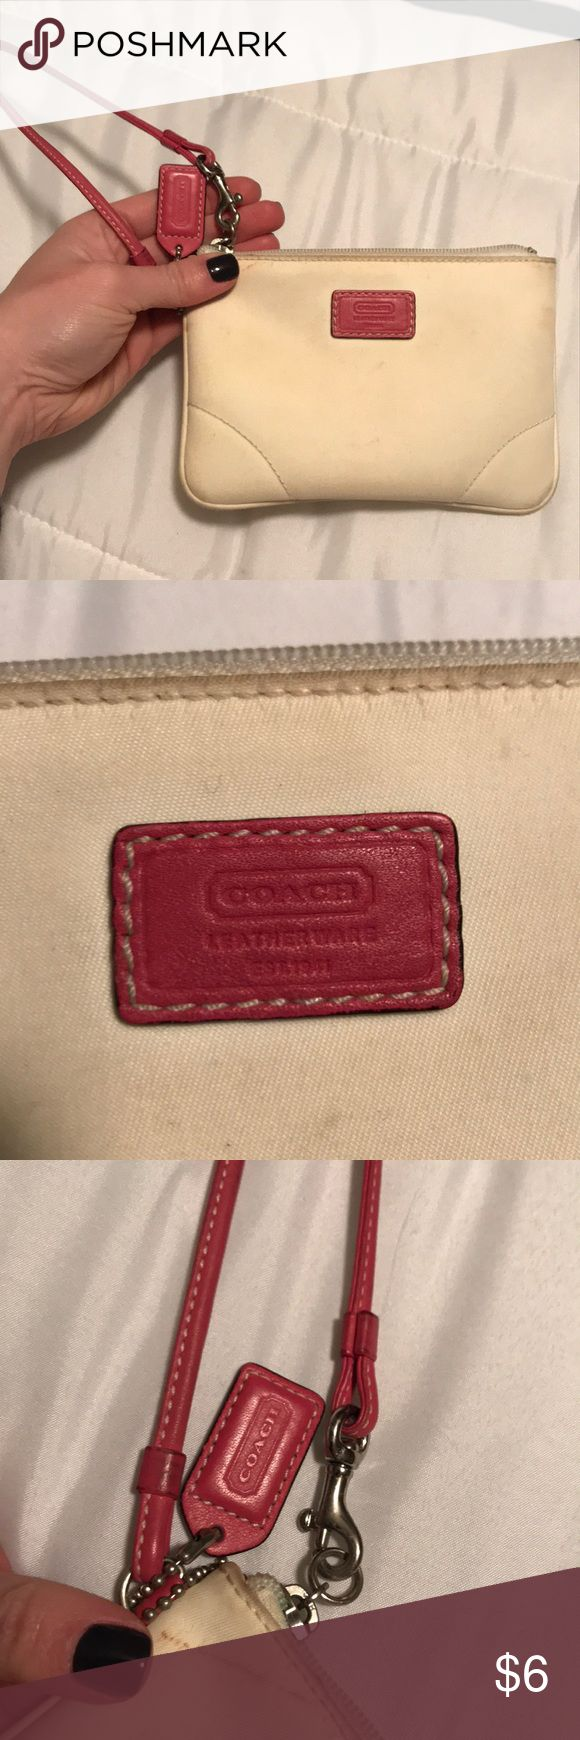 White coach wristlet White coach wristlet. Strap is pink leather, wristlet is white nylon like material. White is very faded with some staining. Interior is excellent condition! Coach Bags Clutches & Wristlets